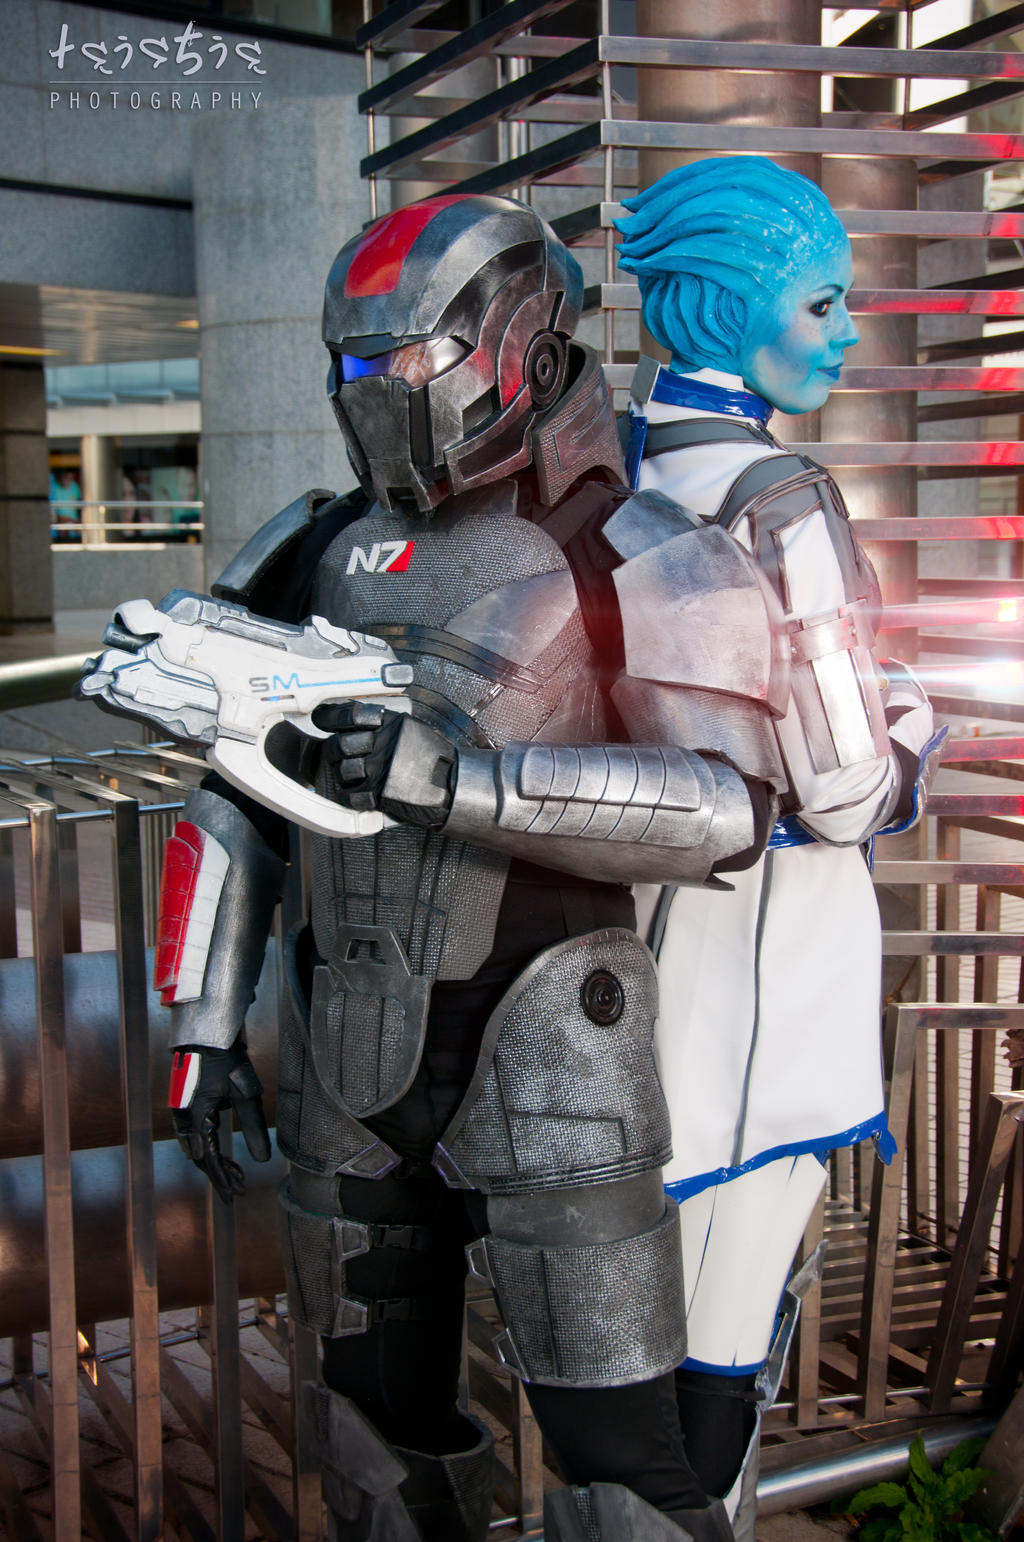 Mass Effect - Side by side by sumyuna